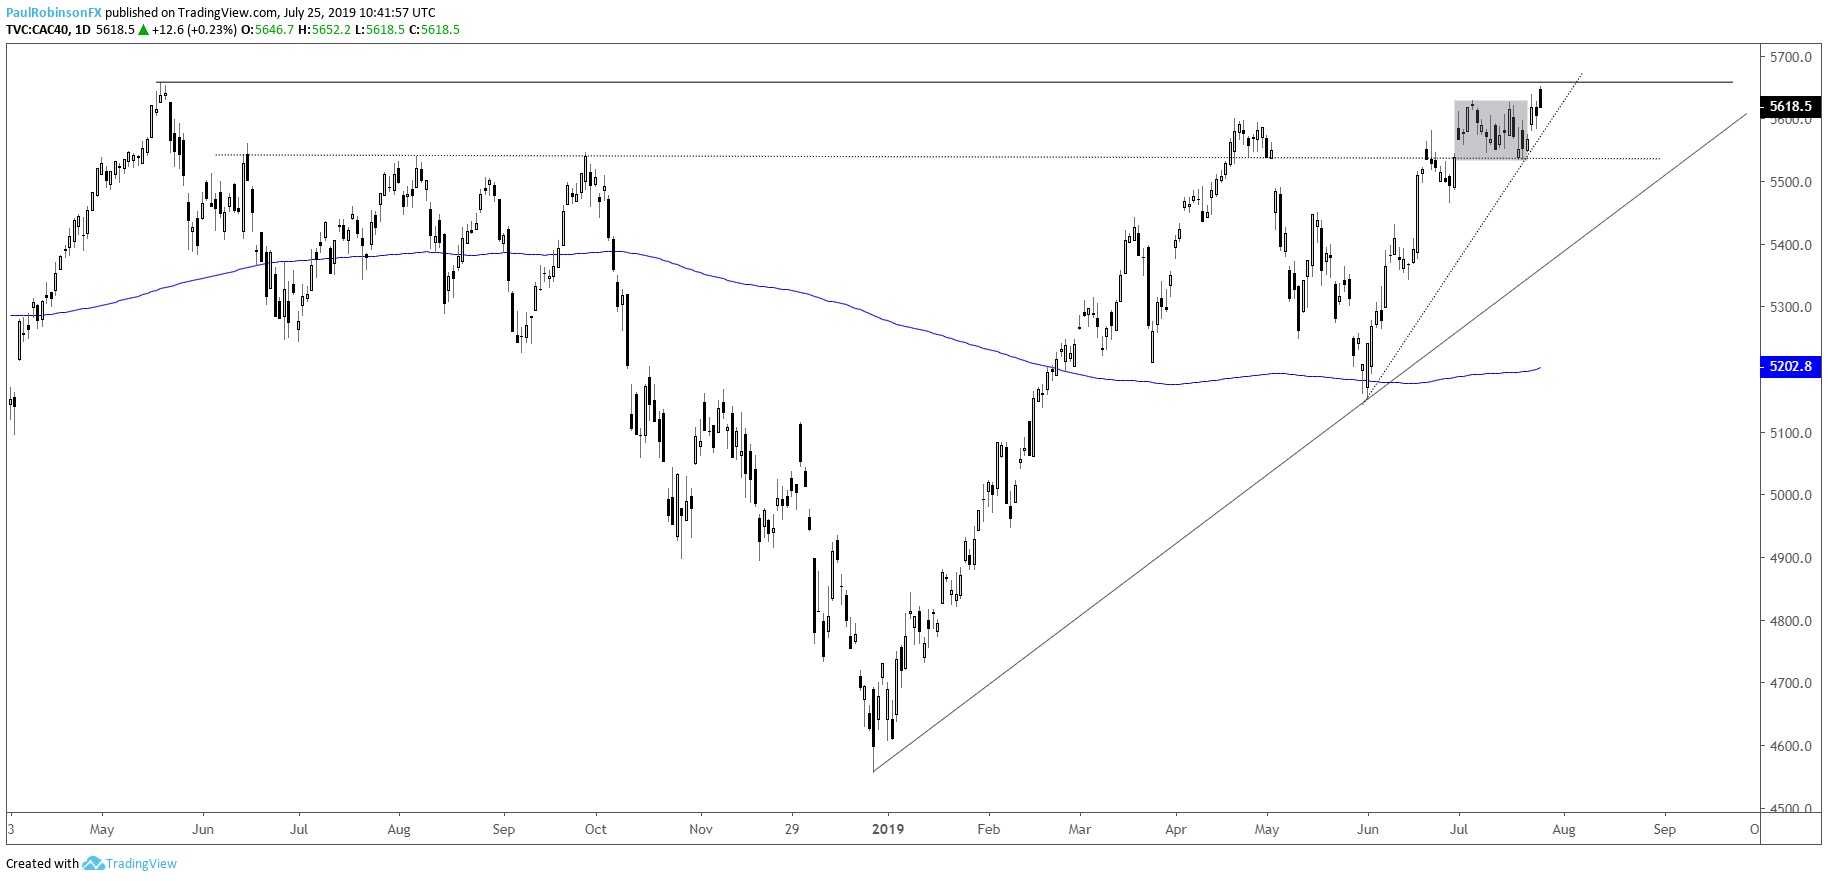 Dax 30 Amp Cac 40 Technical Outlook Cautiously Constructive